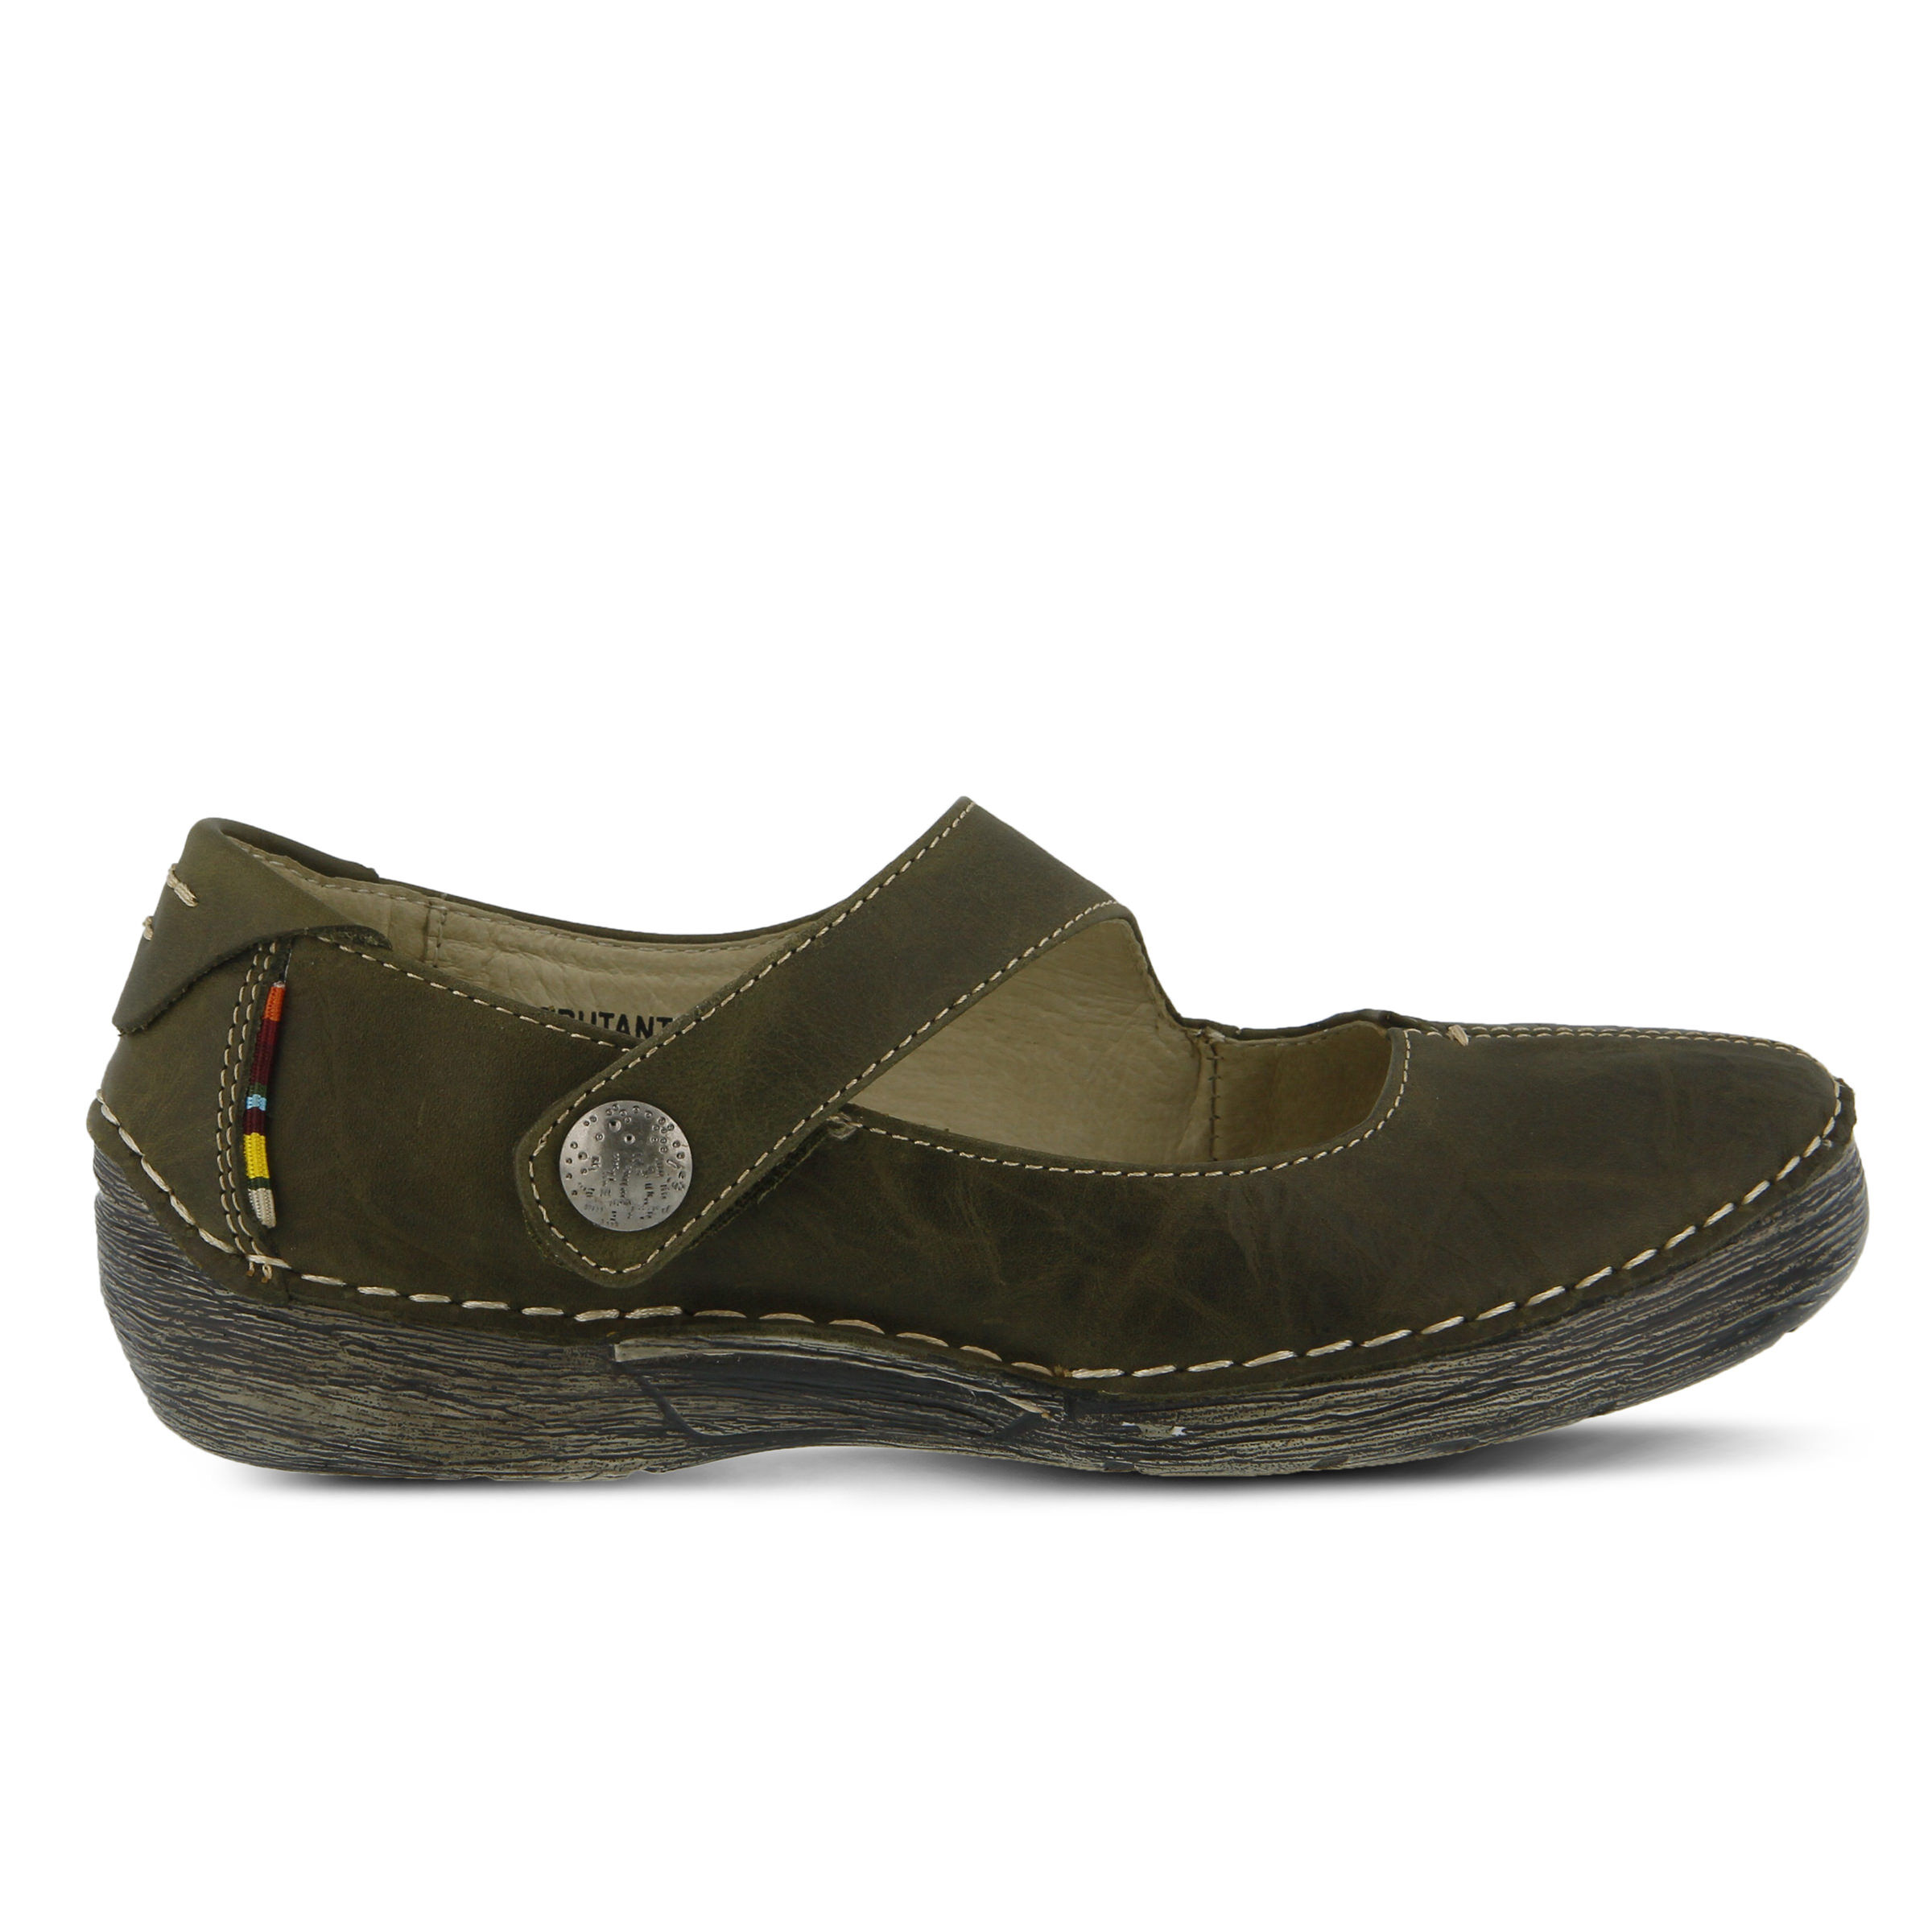 Women's SPRING STEP Debutante Shoes Olive Green